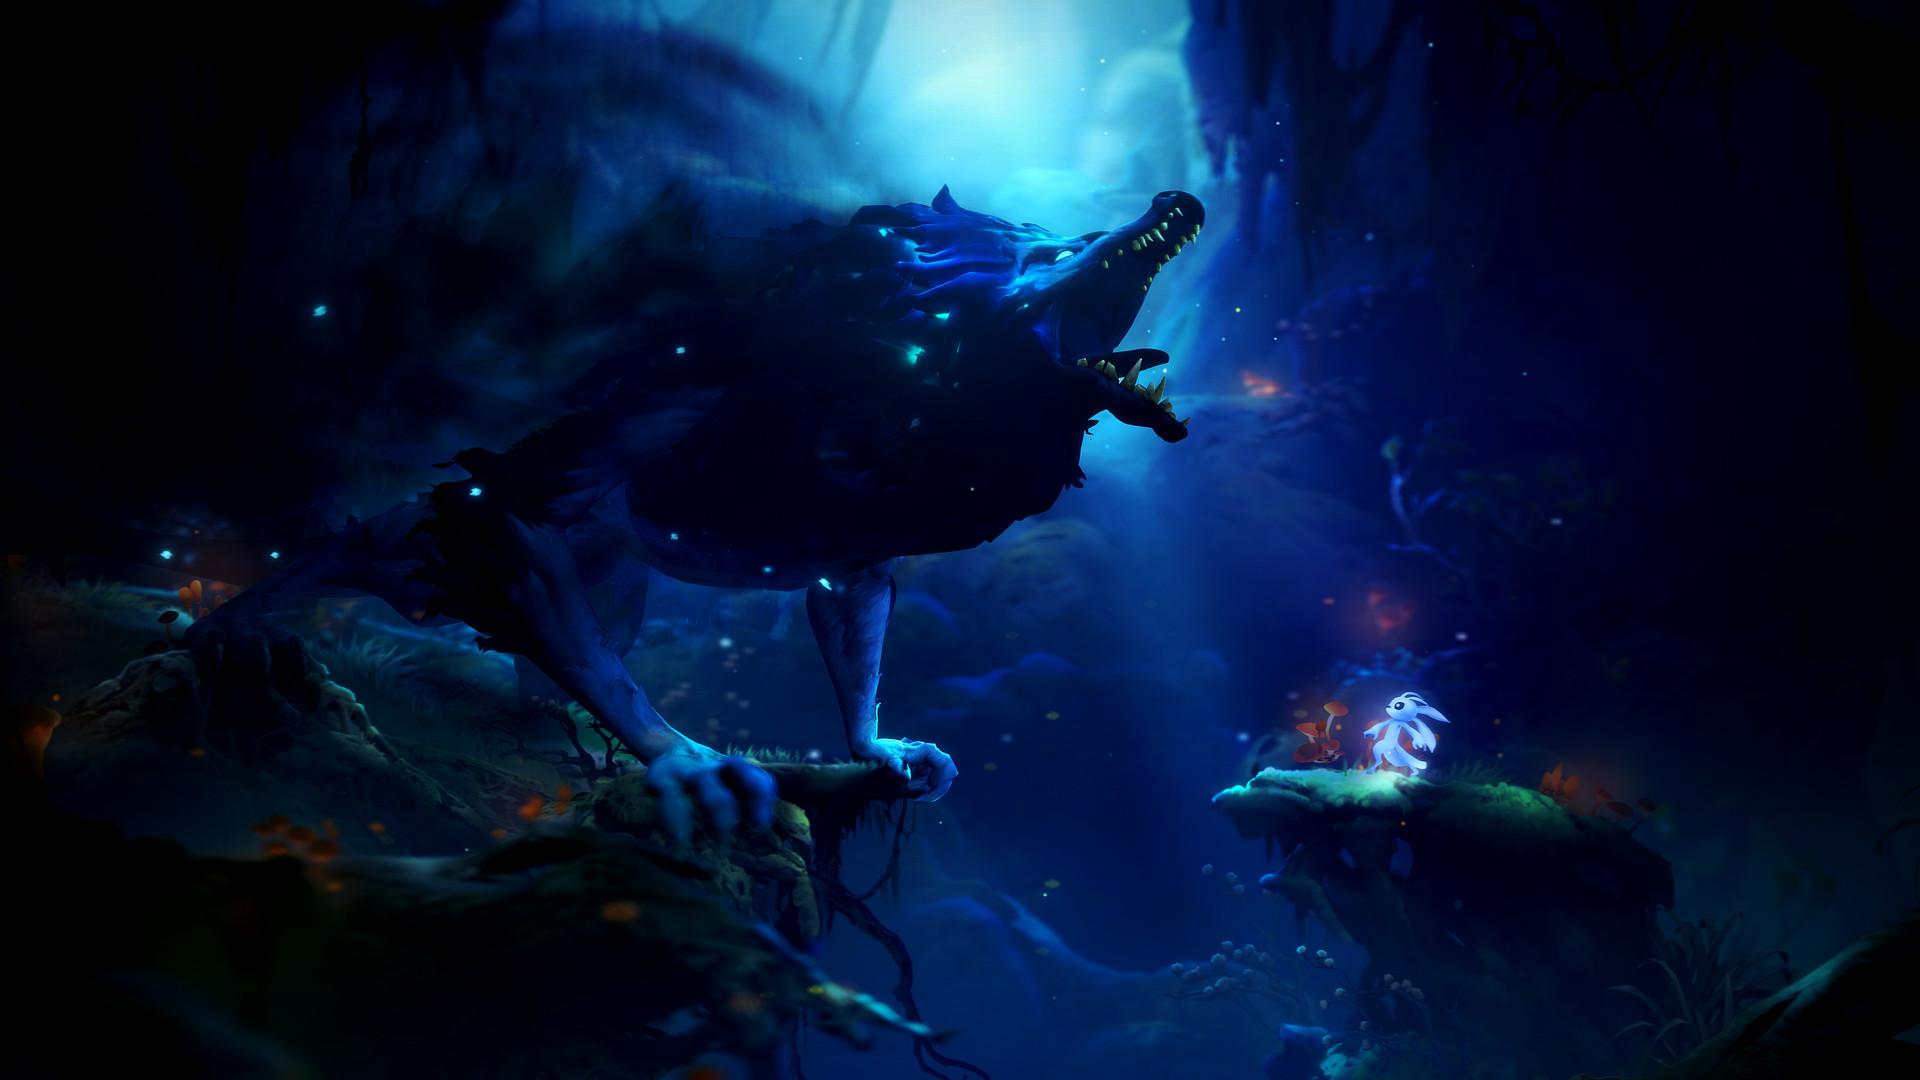 ori-and-the-will-of-the-wisps-pc-screenshot-04